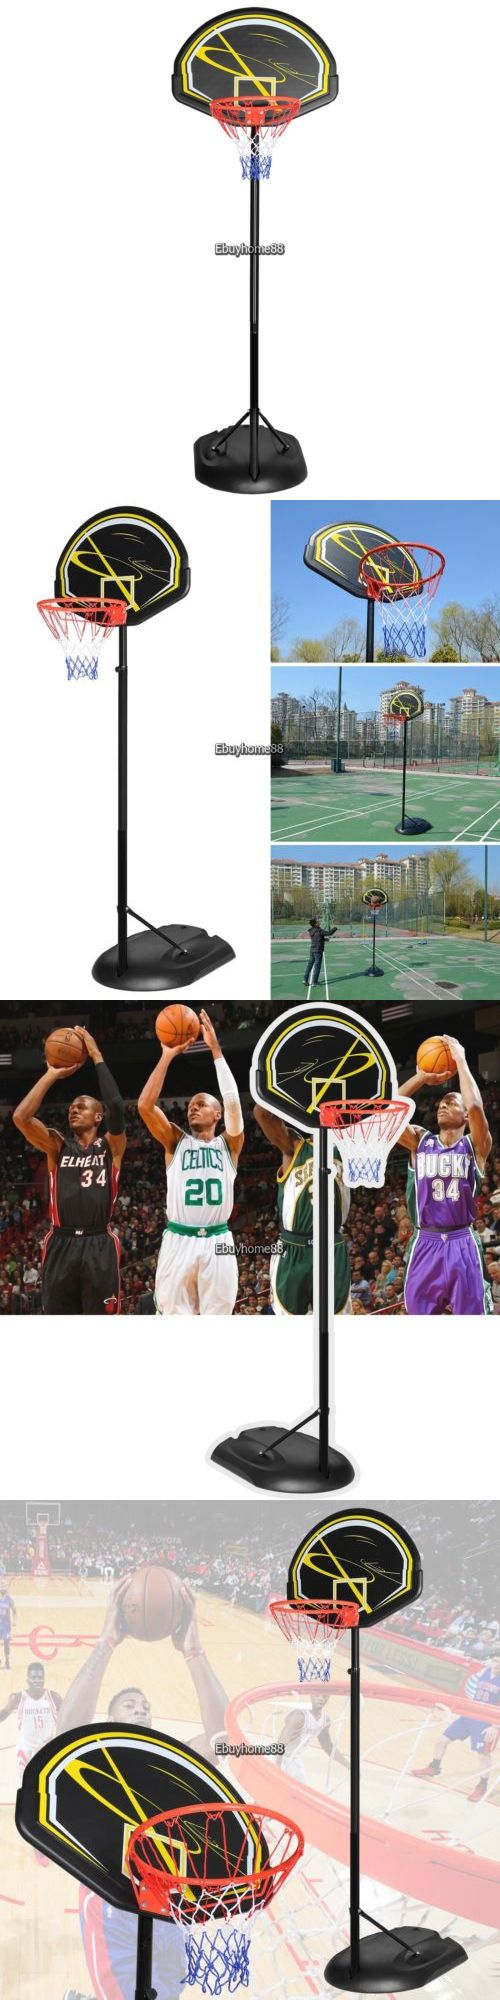 Rims and Nets 158962: New Adult Youth Indoor Outdoor Portable Adjustable Basketball System Ehe801 -> BUY IT NOW ONLY: $89.13 on eBay!